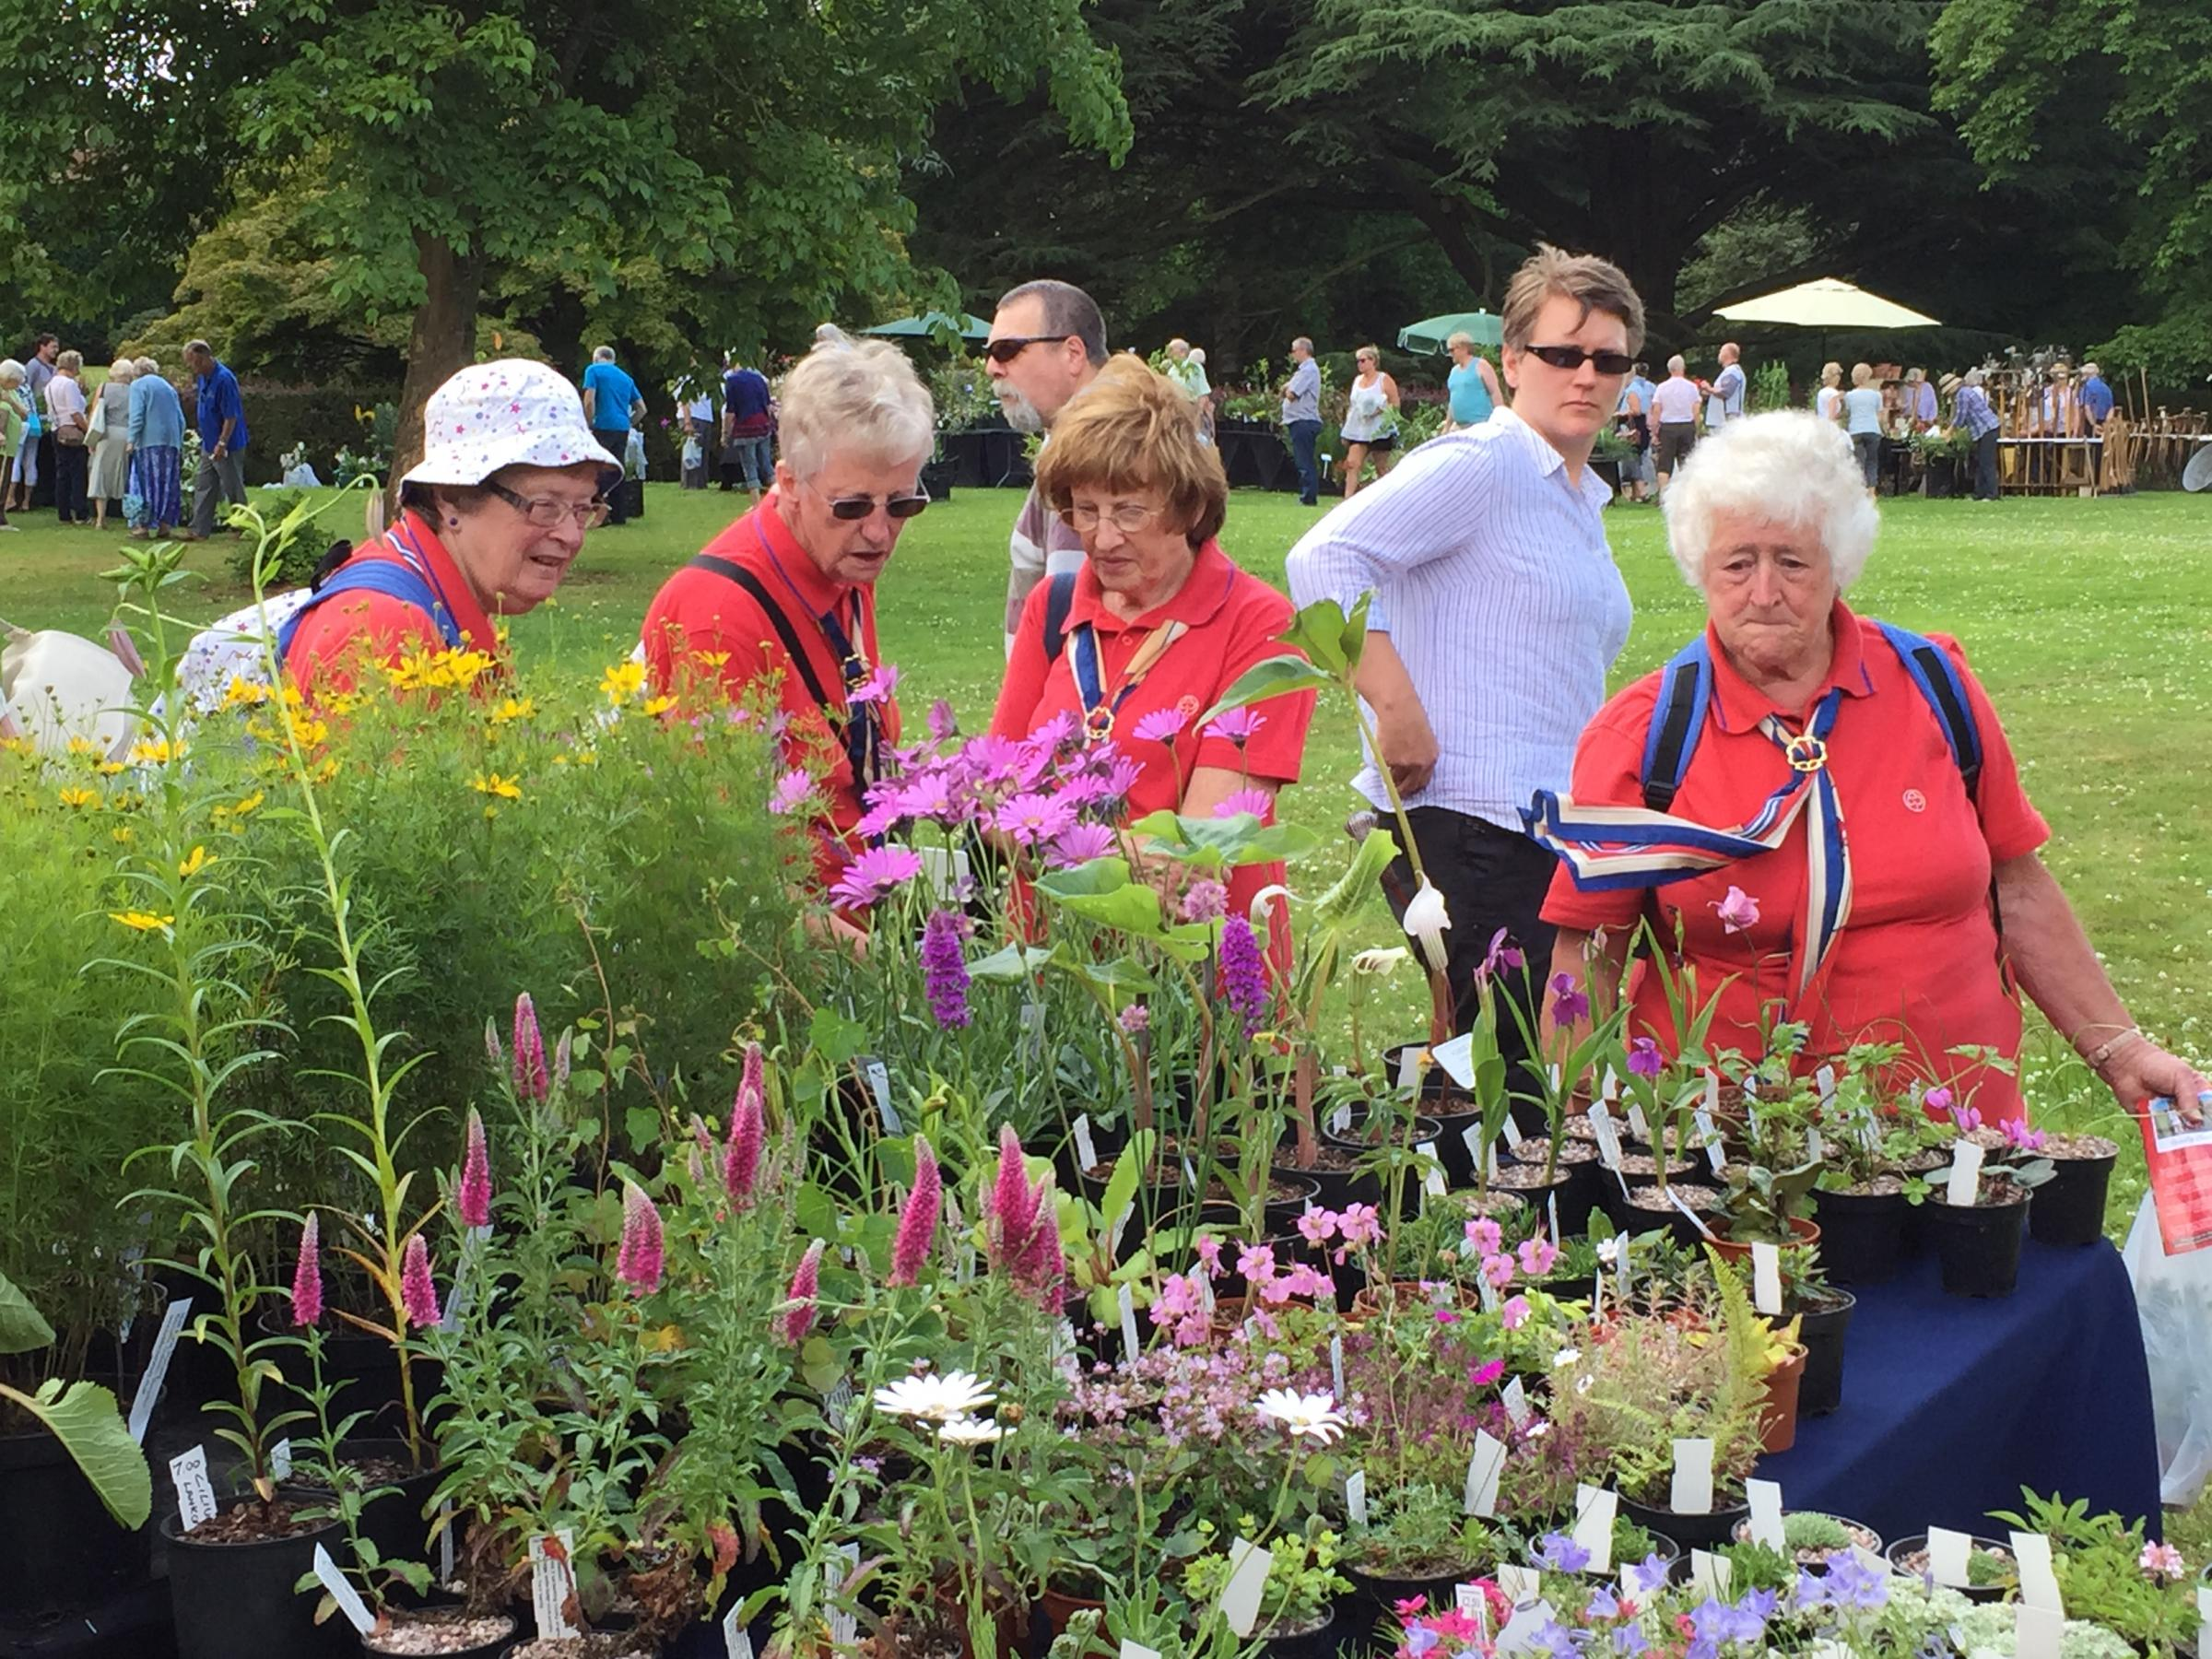 Plant Fair at Arley Arboretum on Saturday 22 June 2019